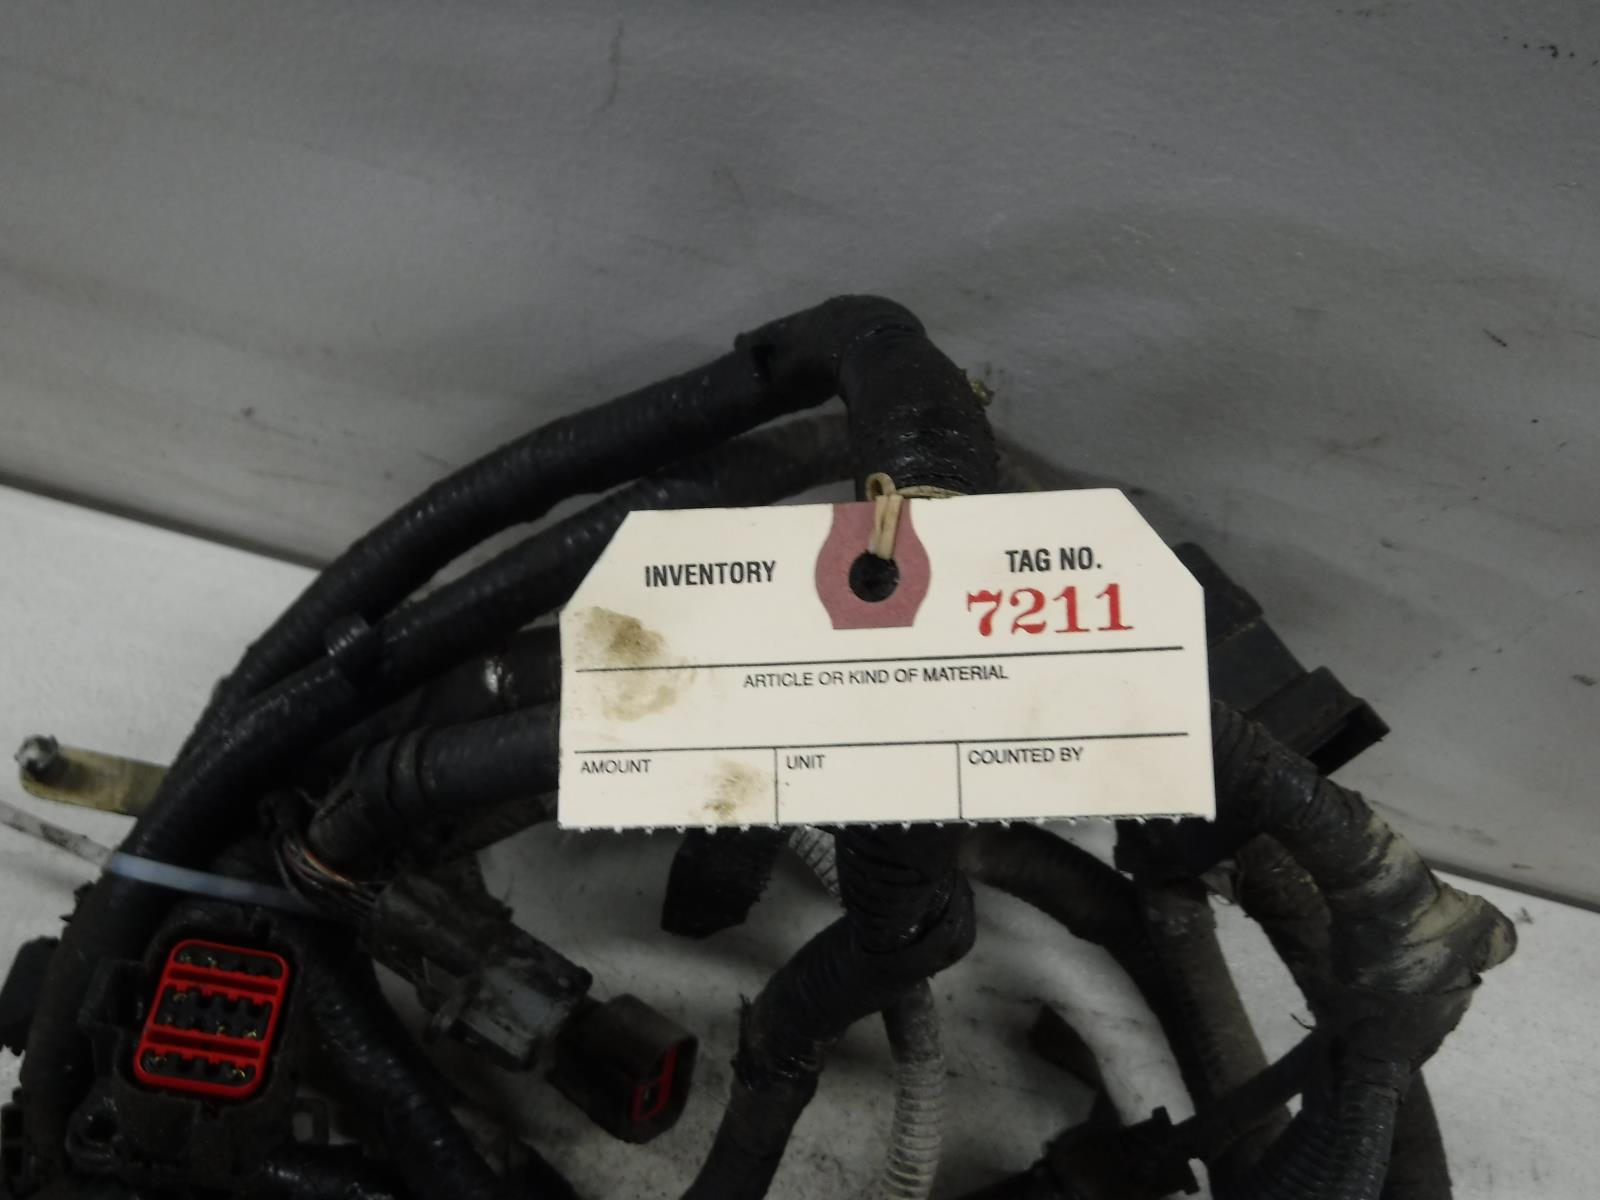 2005 2006 2007 Ford F350 F250 60 Diesel 5r110 Auto 4x4 Wiring Harness Shipping Information